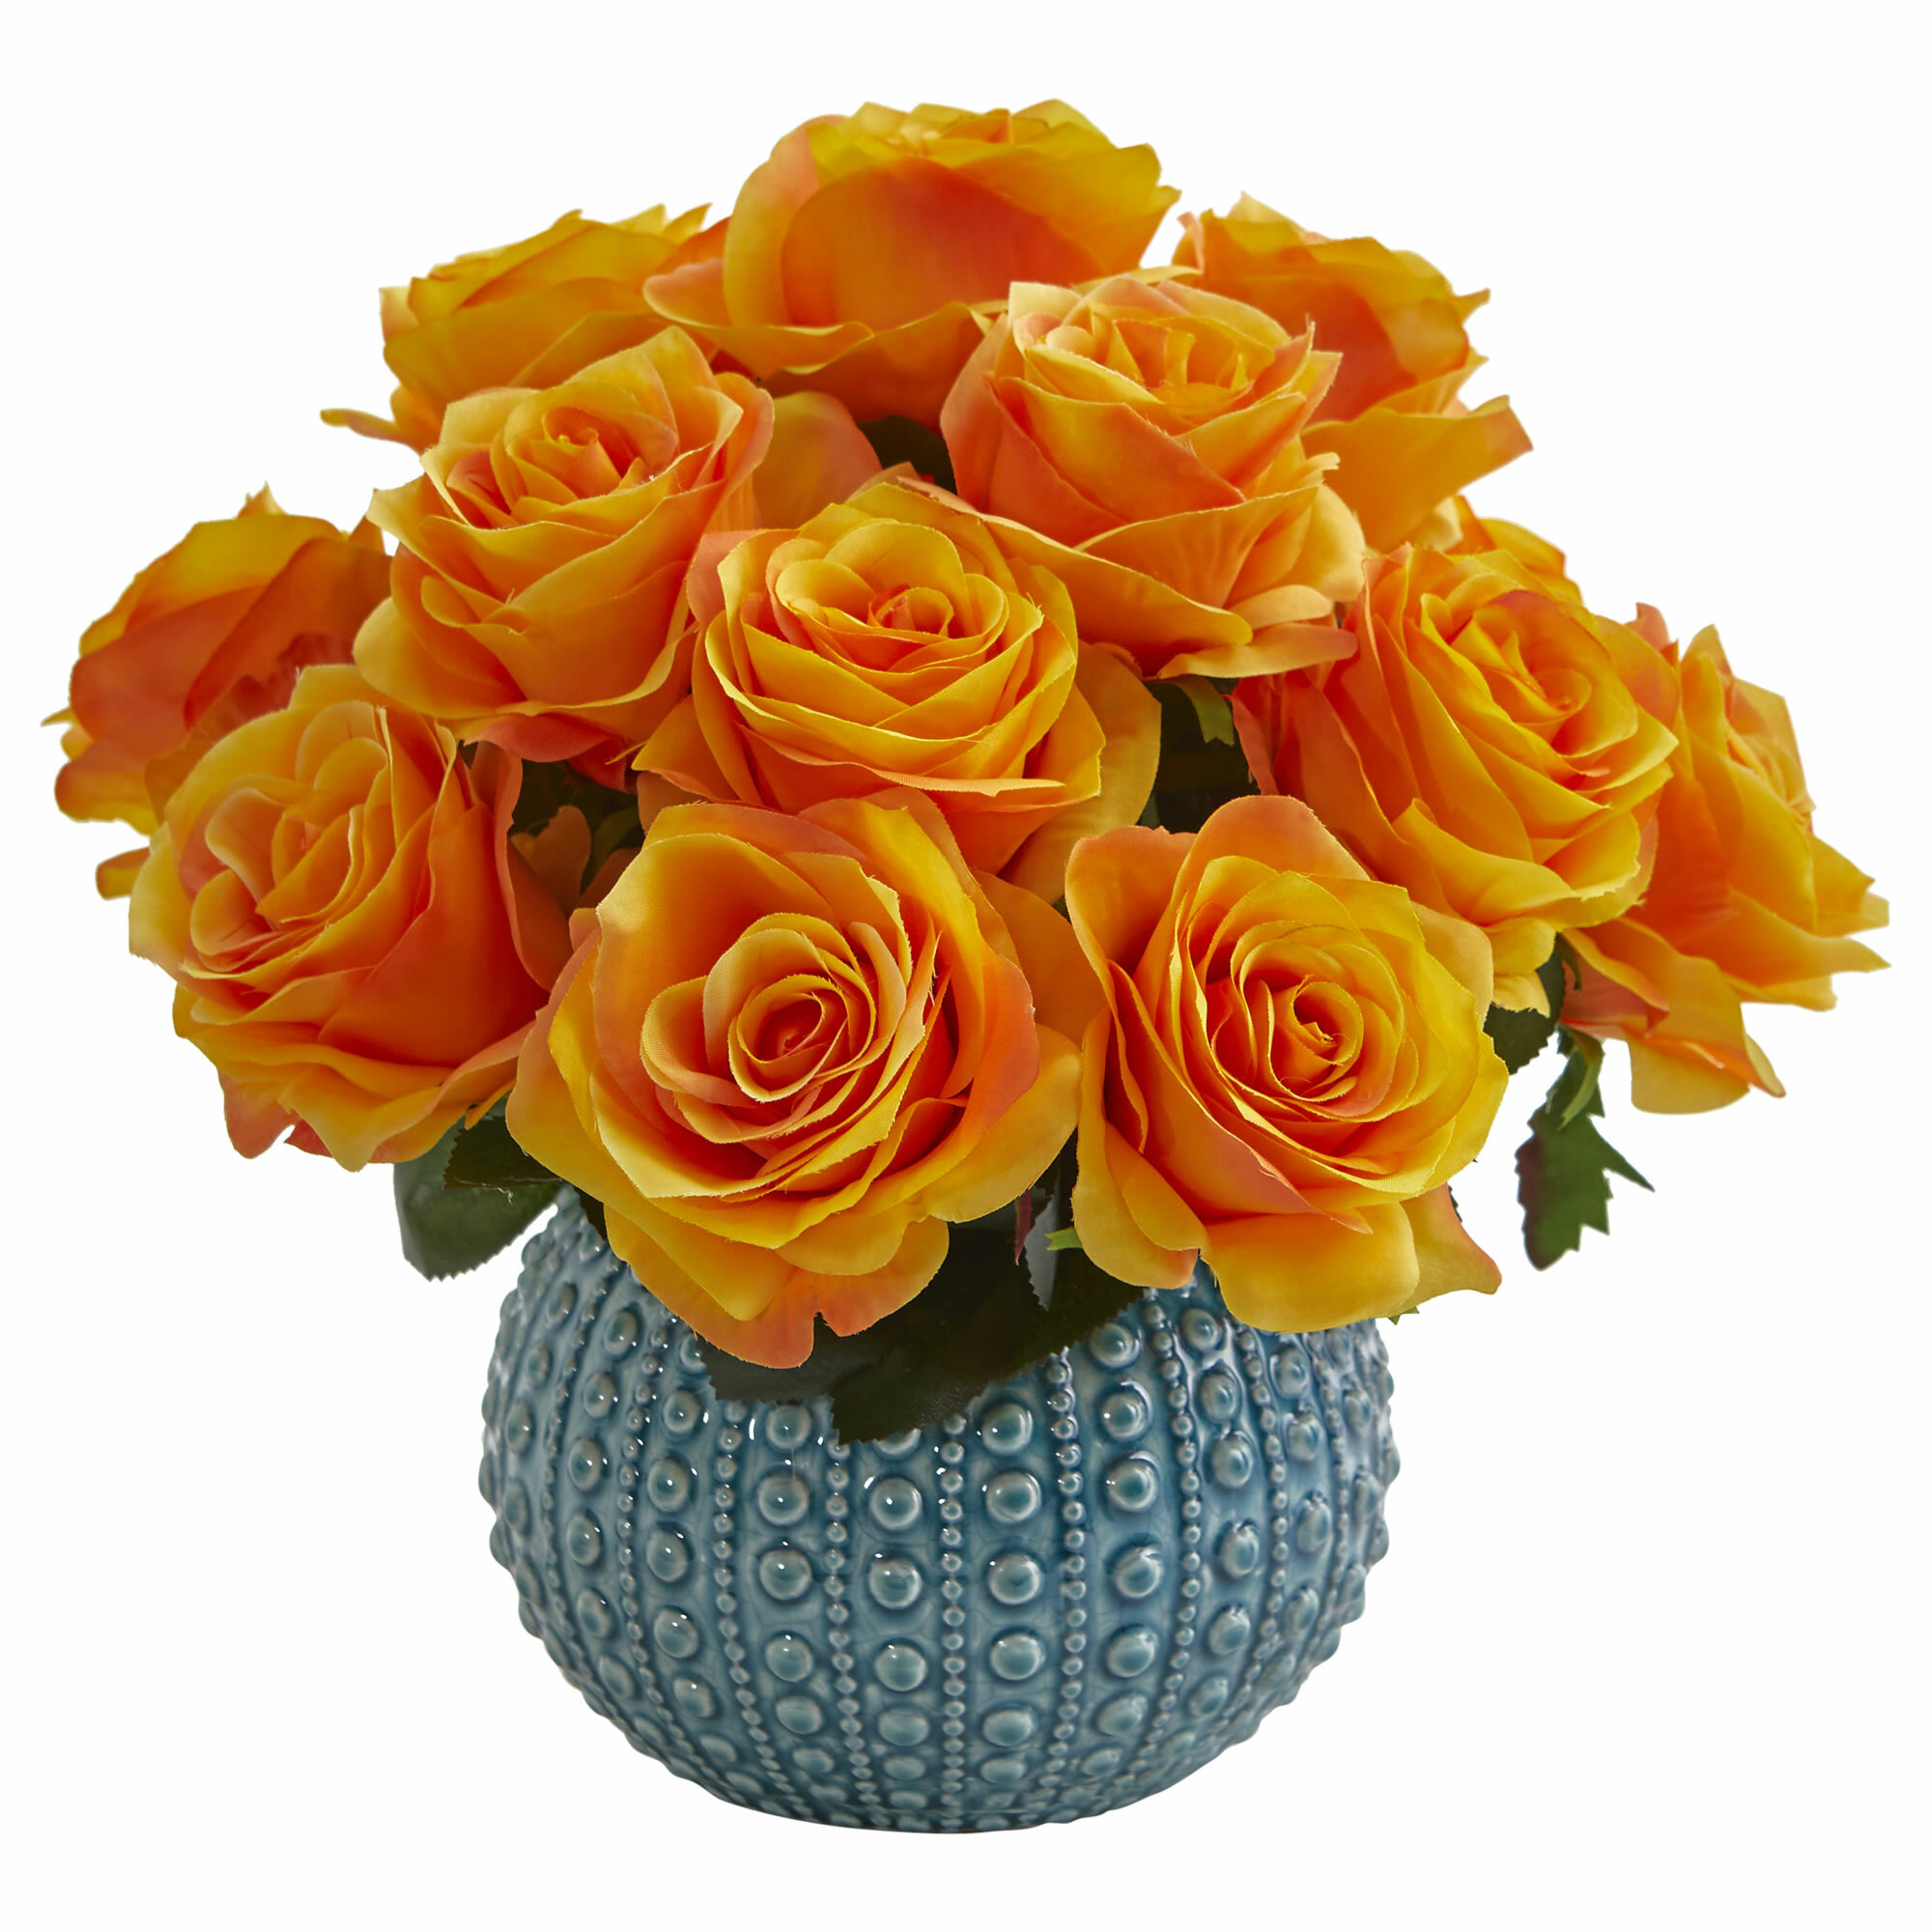 Bungalow Rose Rose Artificial Floral Arrangement In Ceramic Vase